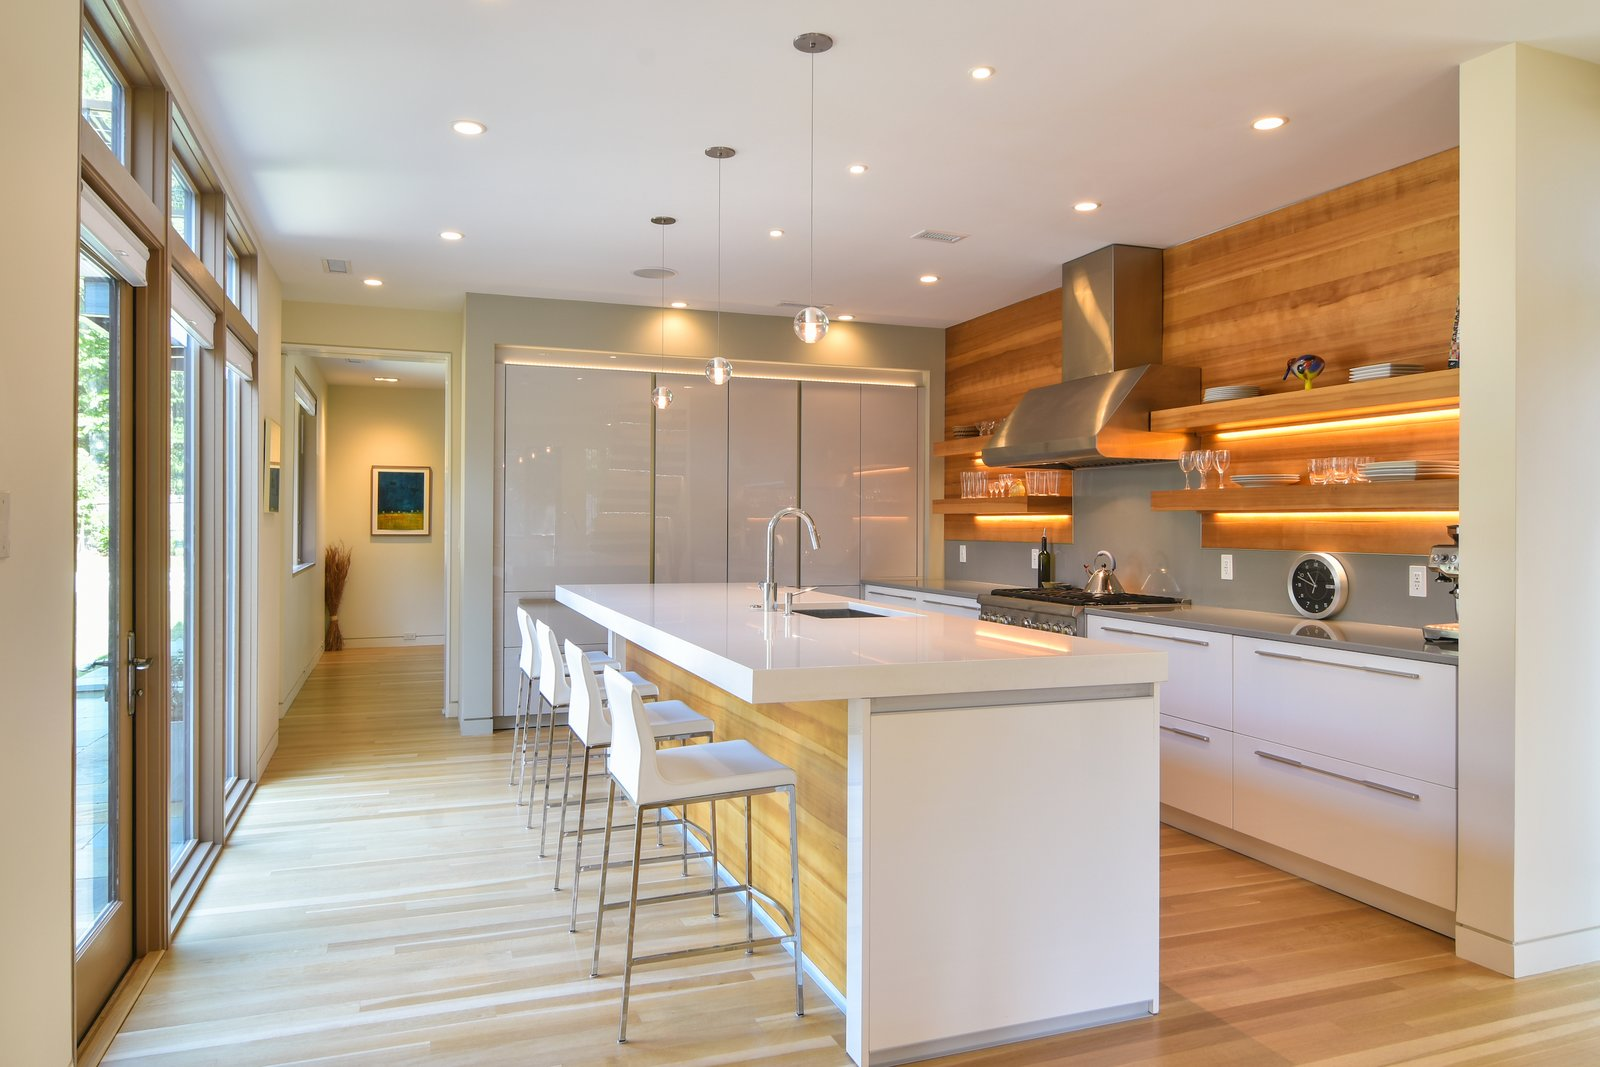 Kitchen, Metal, Refrigerator, Range Hood, Range, Ceiling, Undermount, Concrete, Pendant, Light Hardwood, White, and Recessed Mount Pleasant Modern: Kitchen   Best Kitchen Ceiling Concrete Pendant Range Hood Range Photos from Mount Pleasant Modern